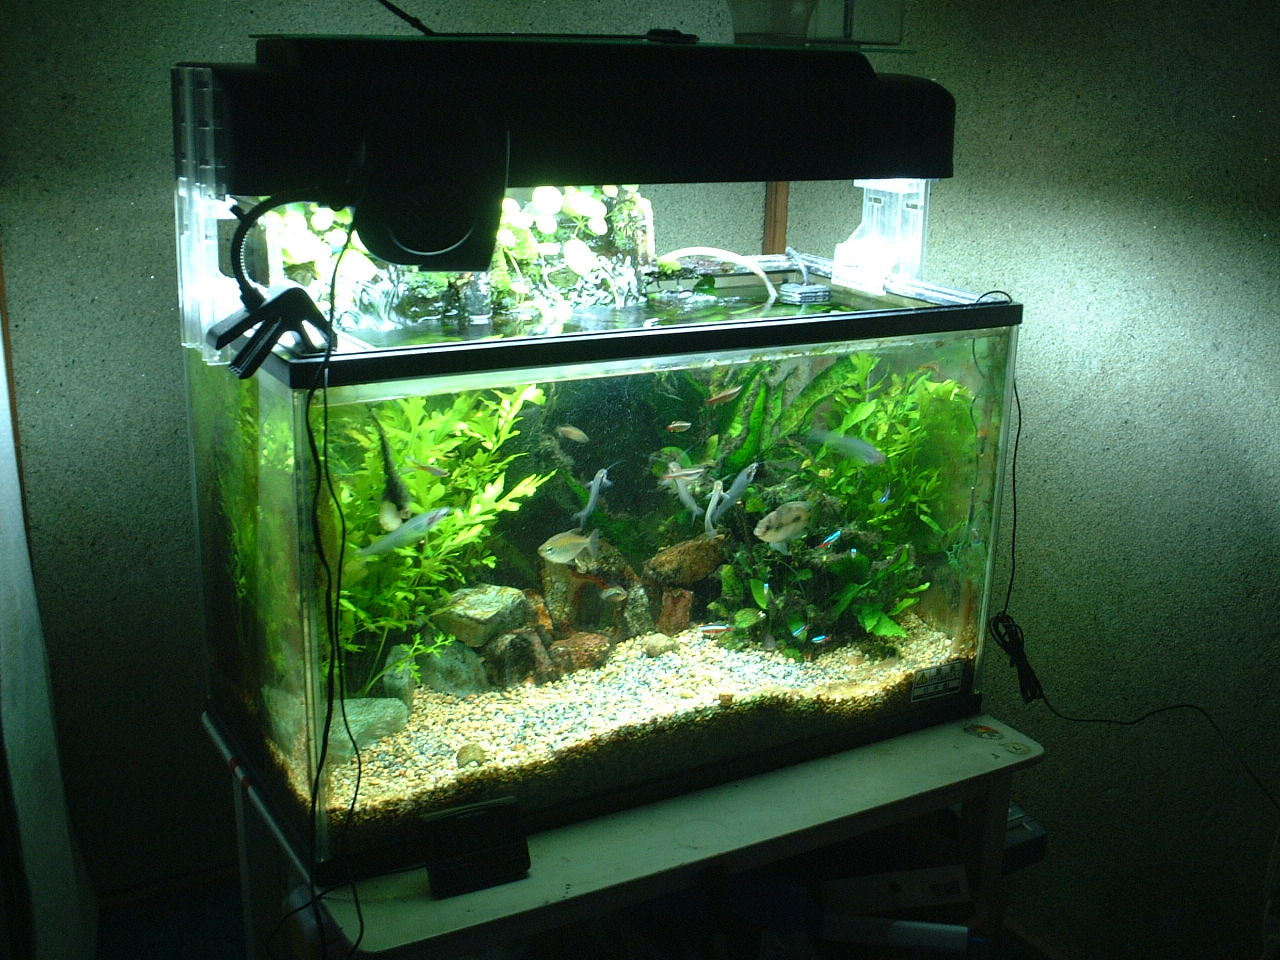 Freshwater aquarium - Wikipedia, the free encyclopedia